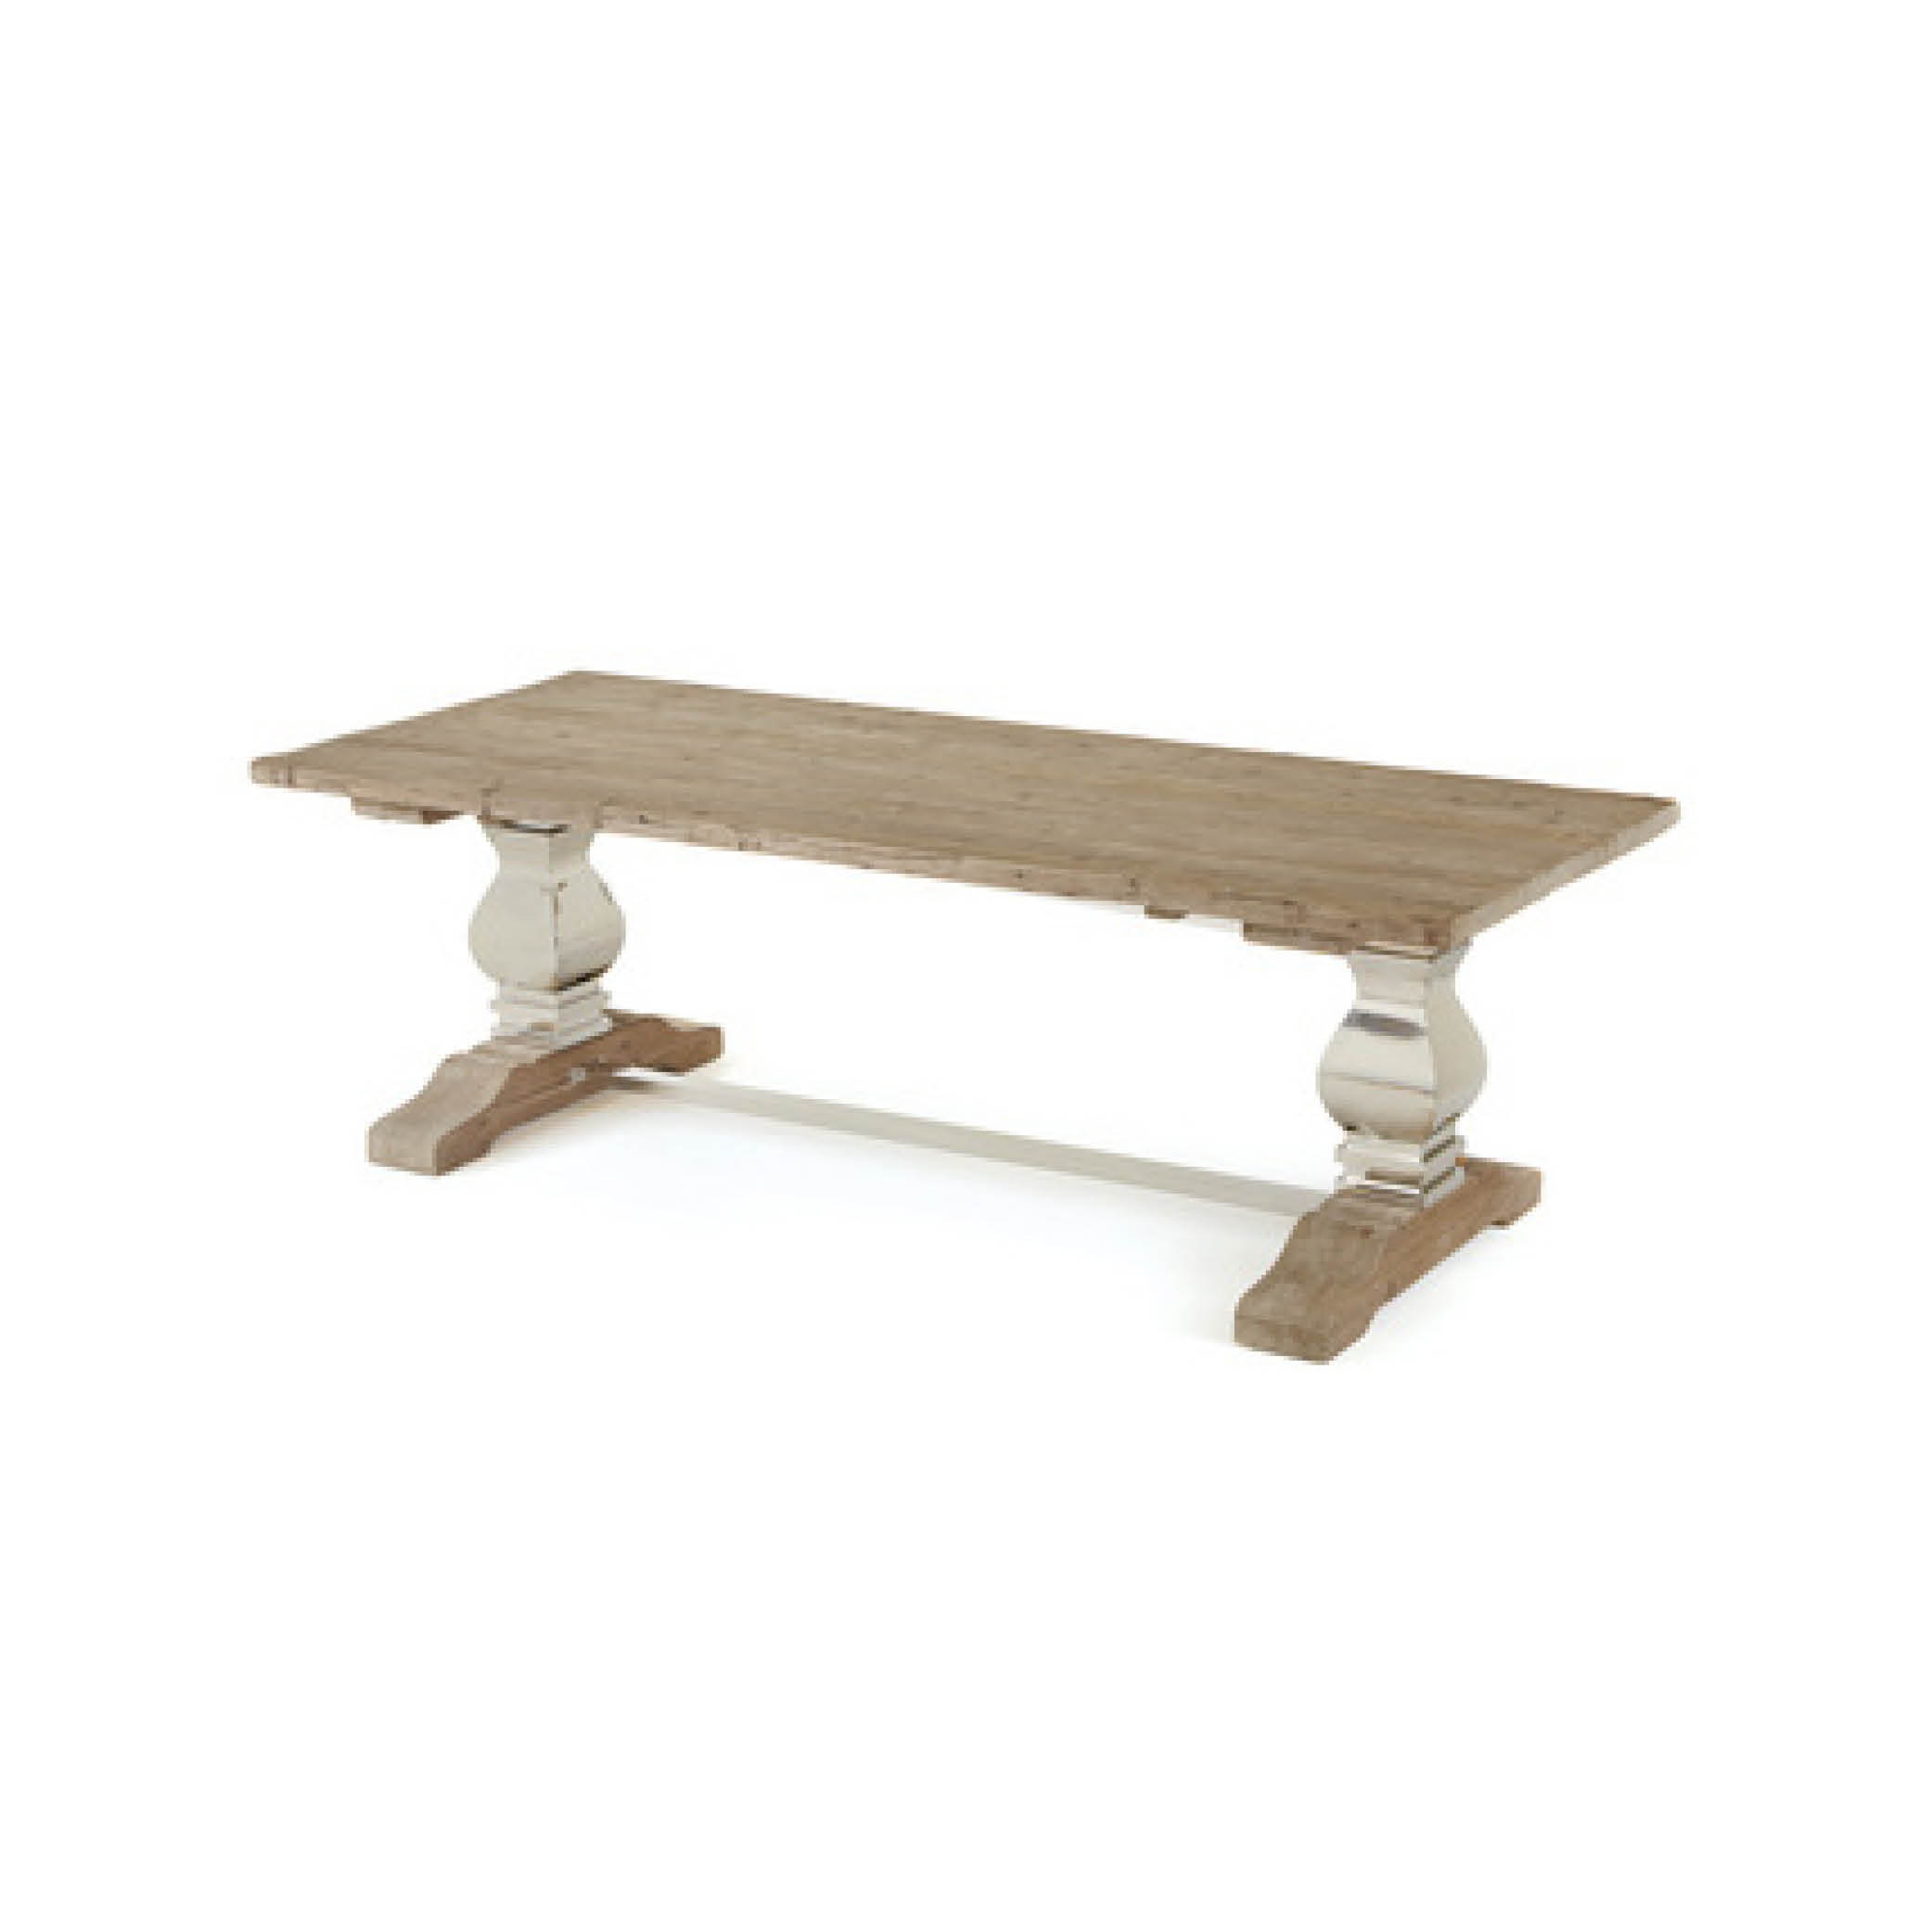 Villa Dining Table $3285.00   Wants 1 Has 0 Needs 1